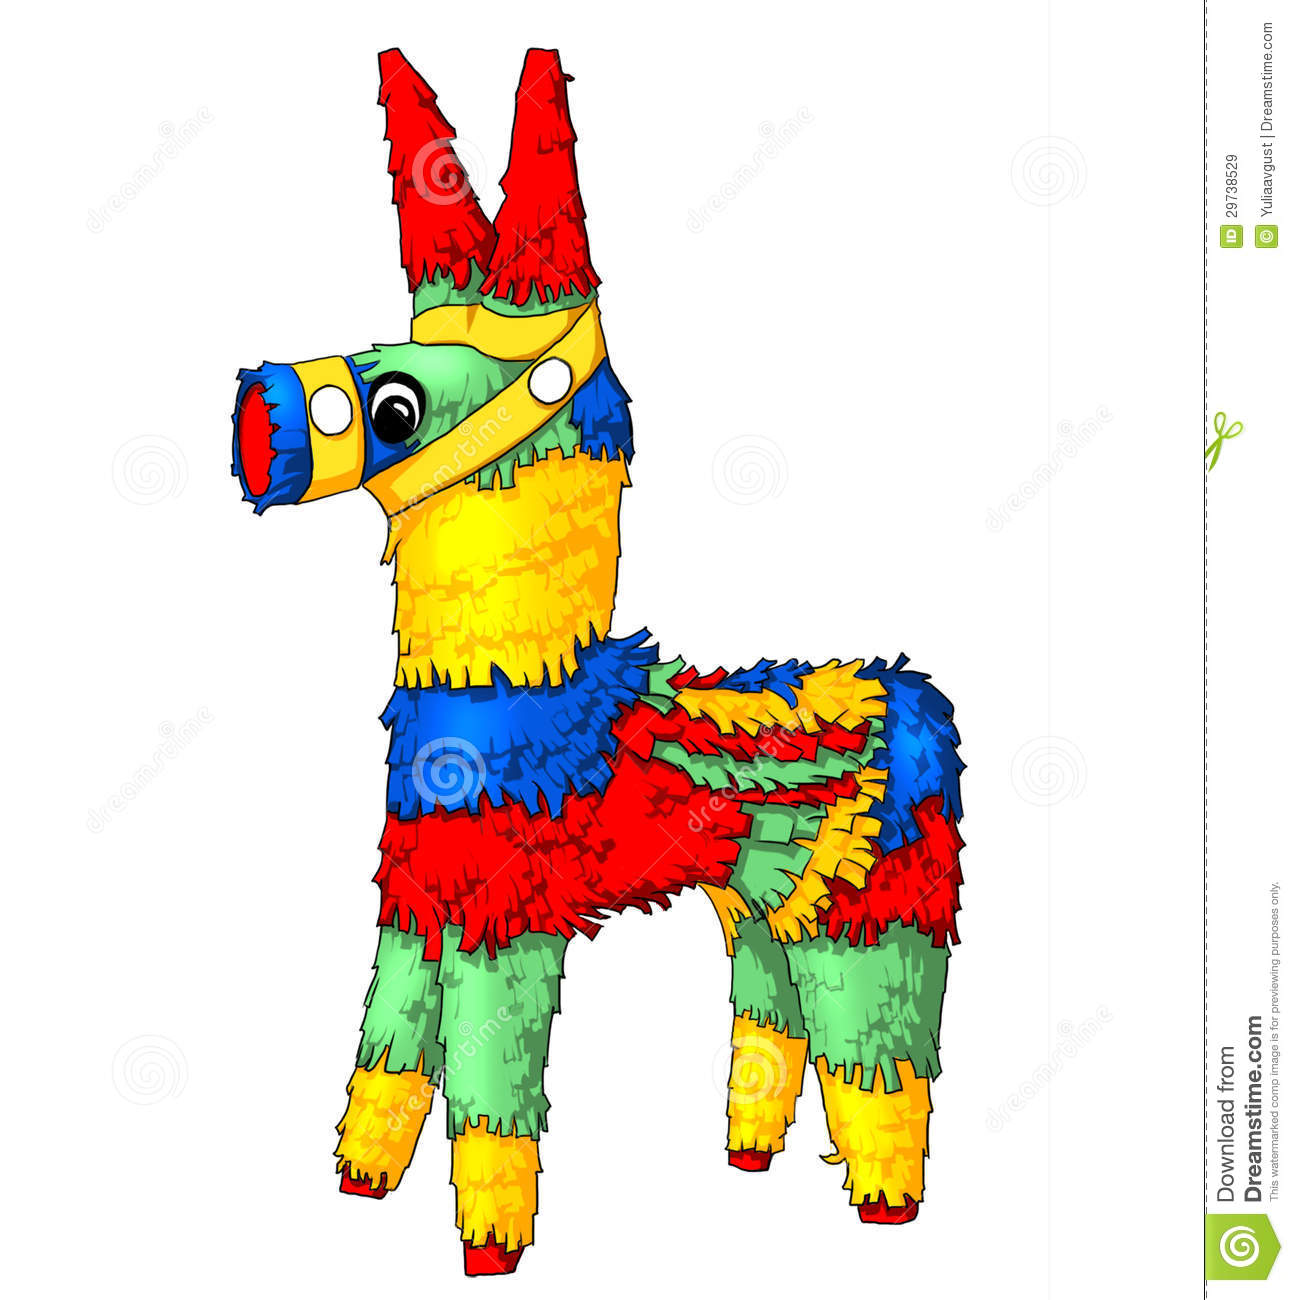 Pinata stock illustration. Illustration of color, isolated ...